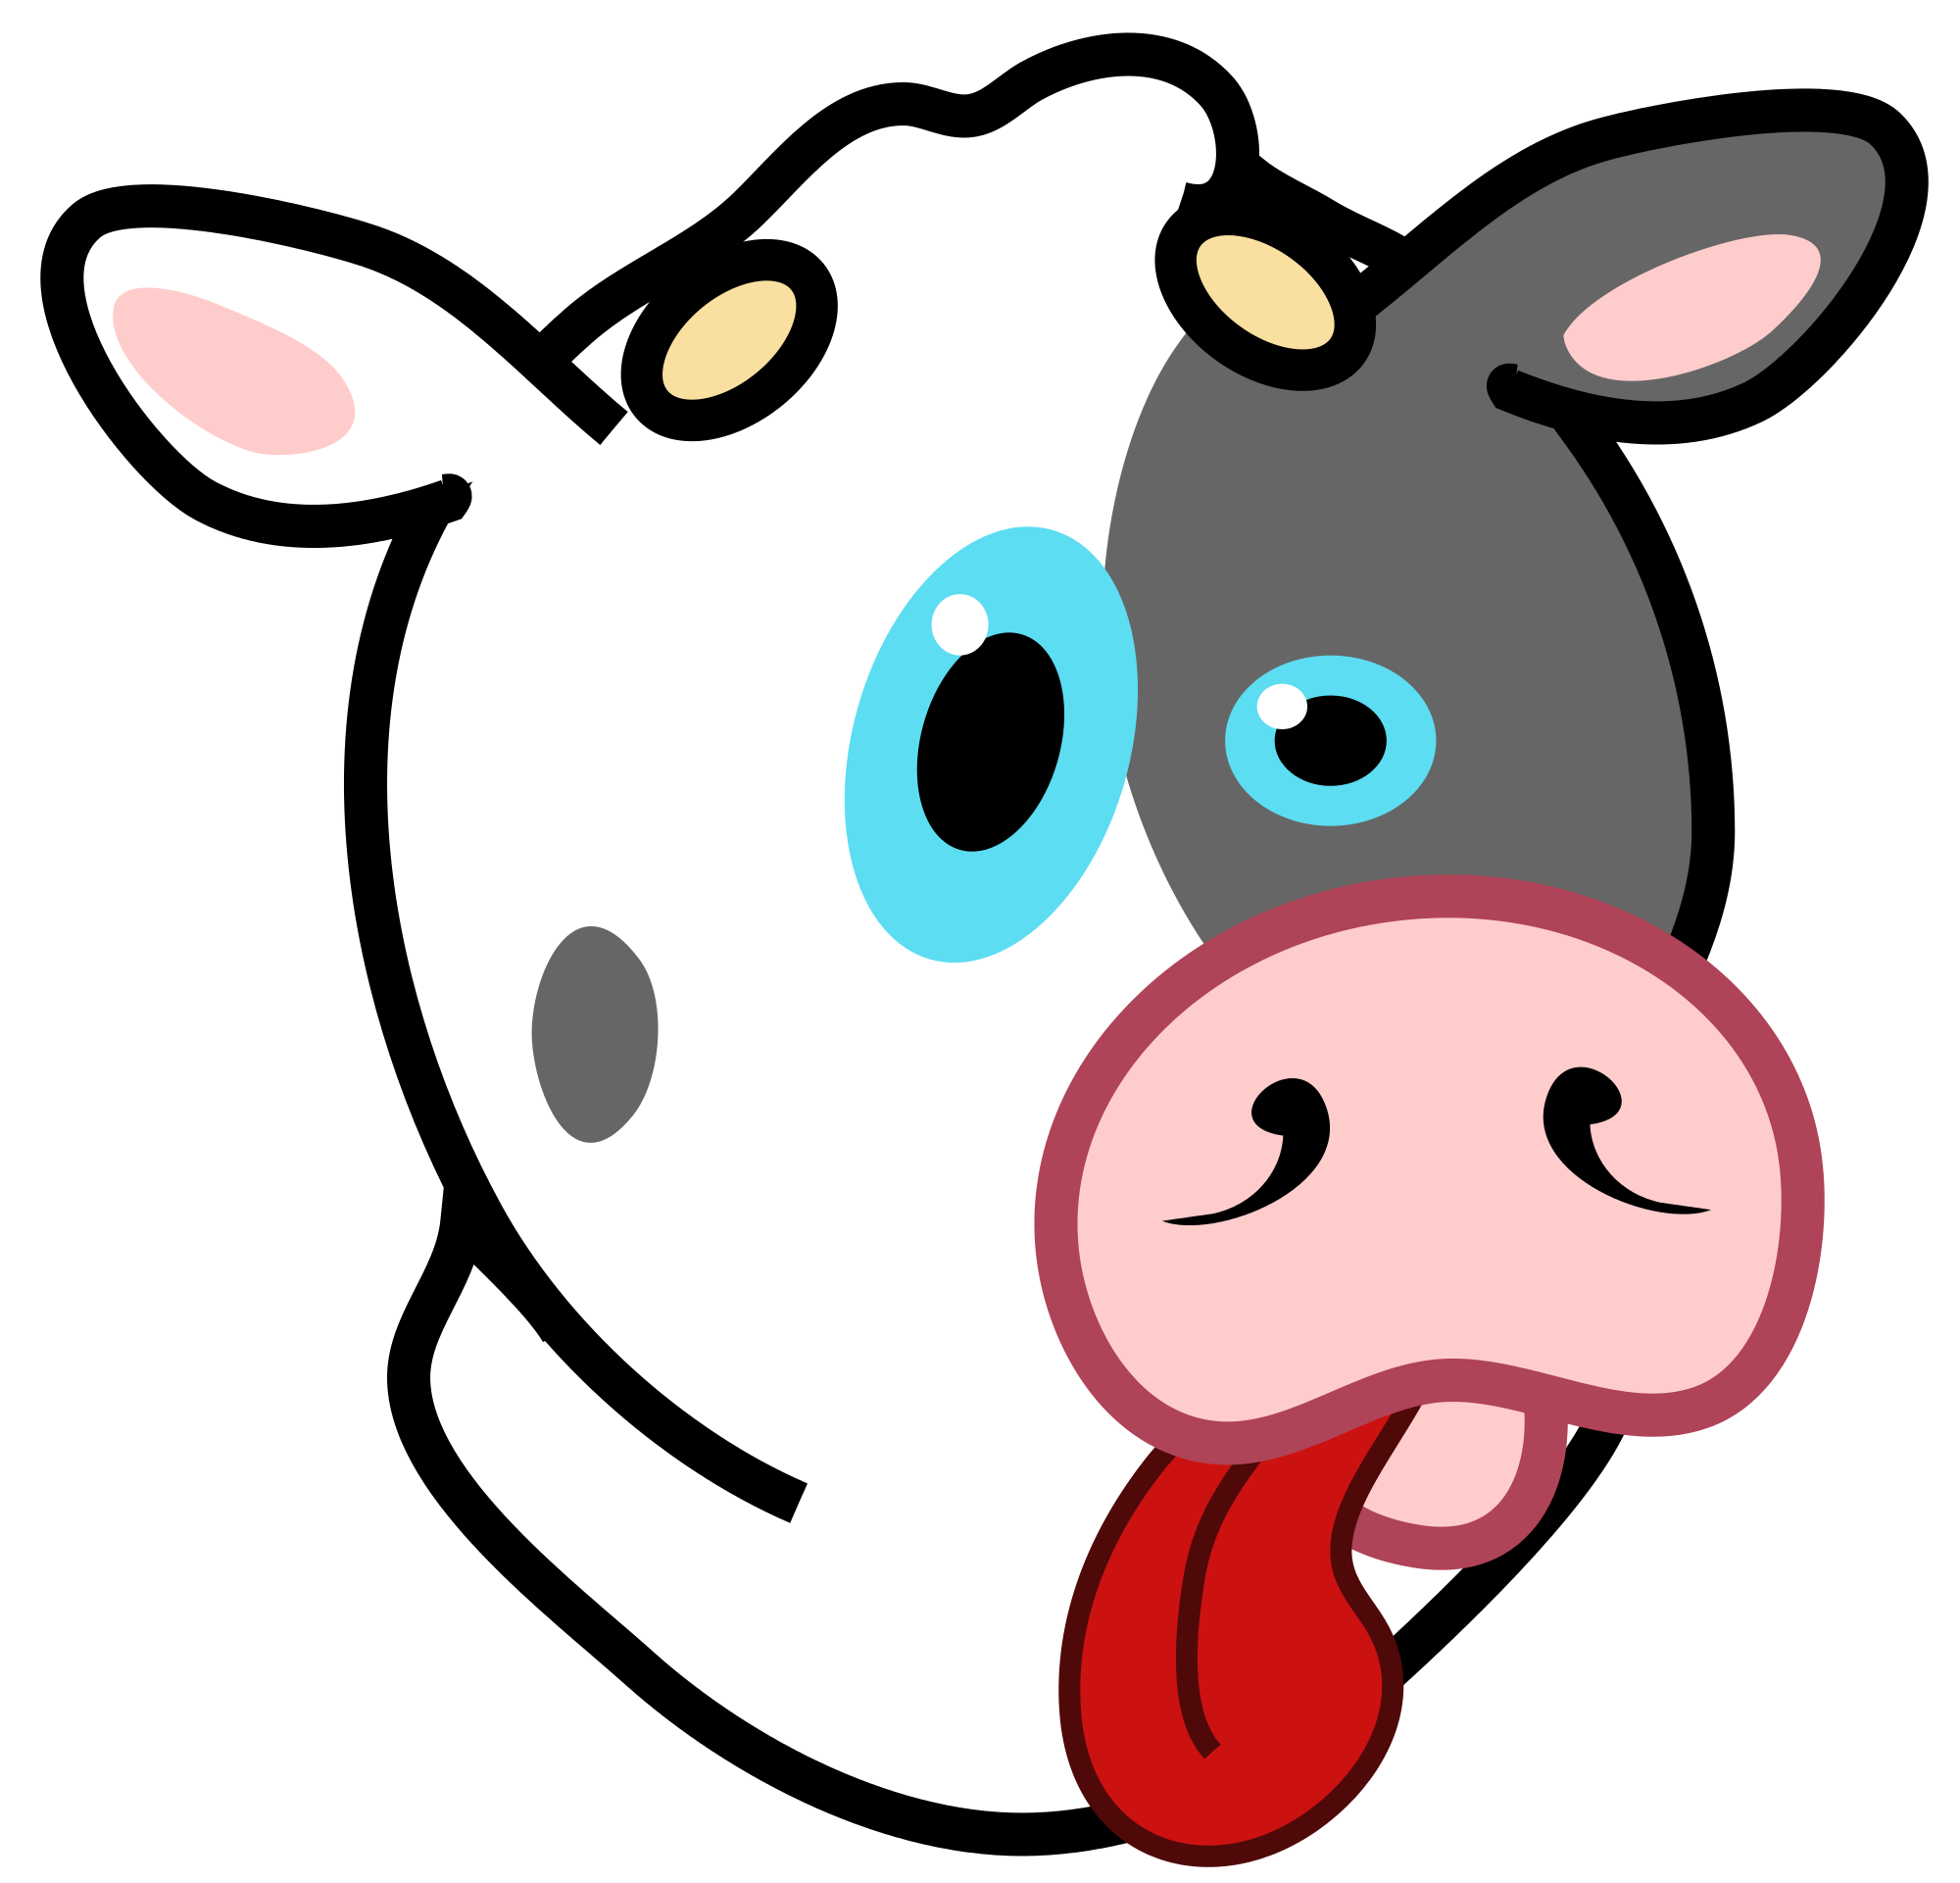 Cows clipart nose. File cow icon svg